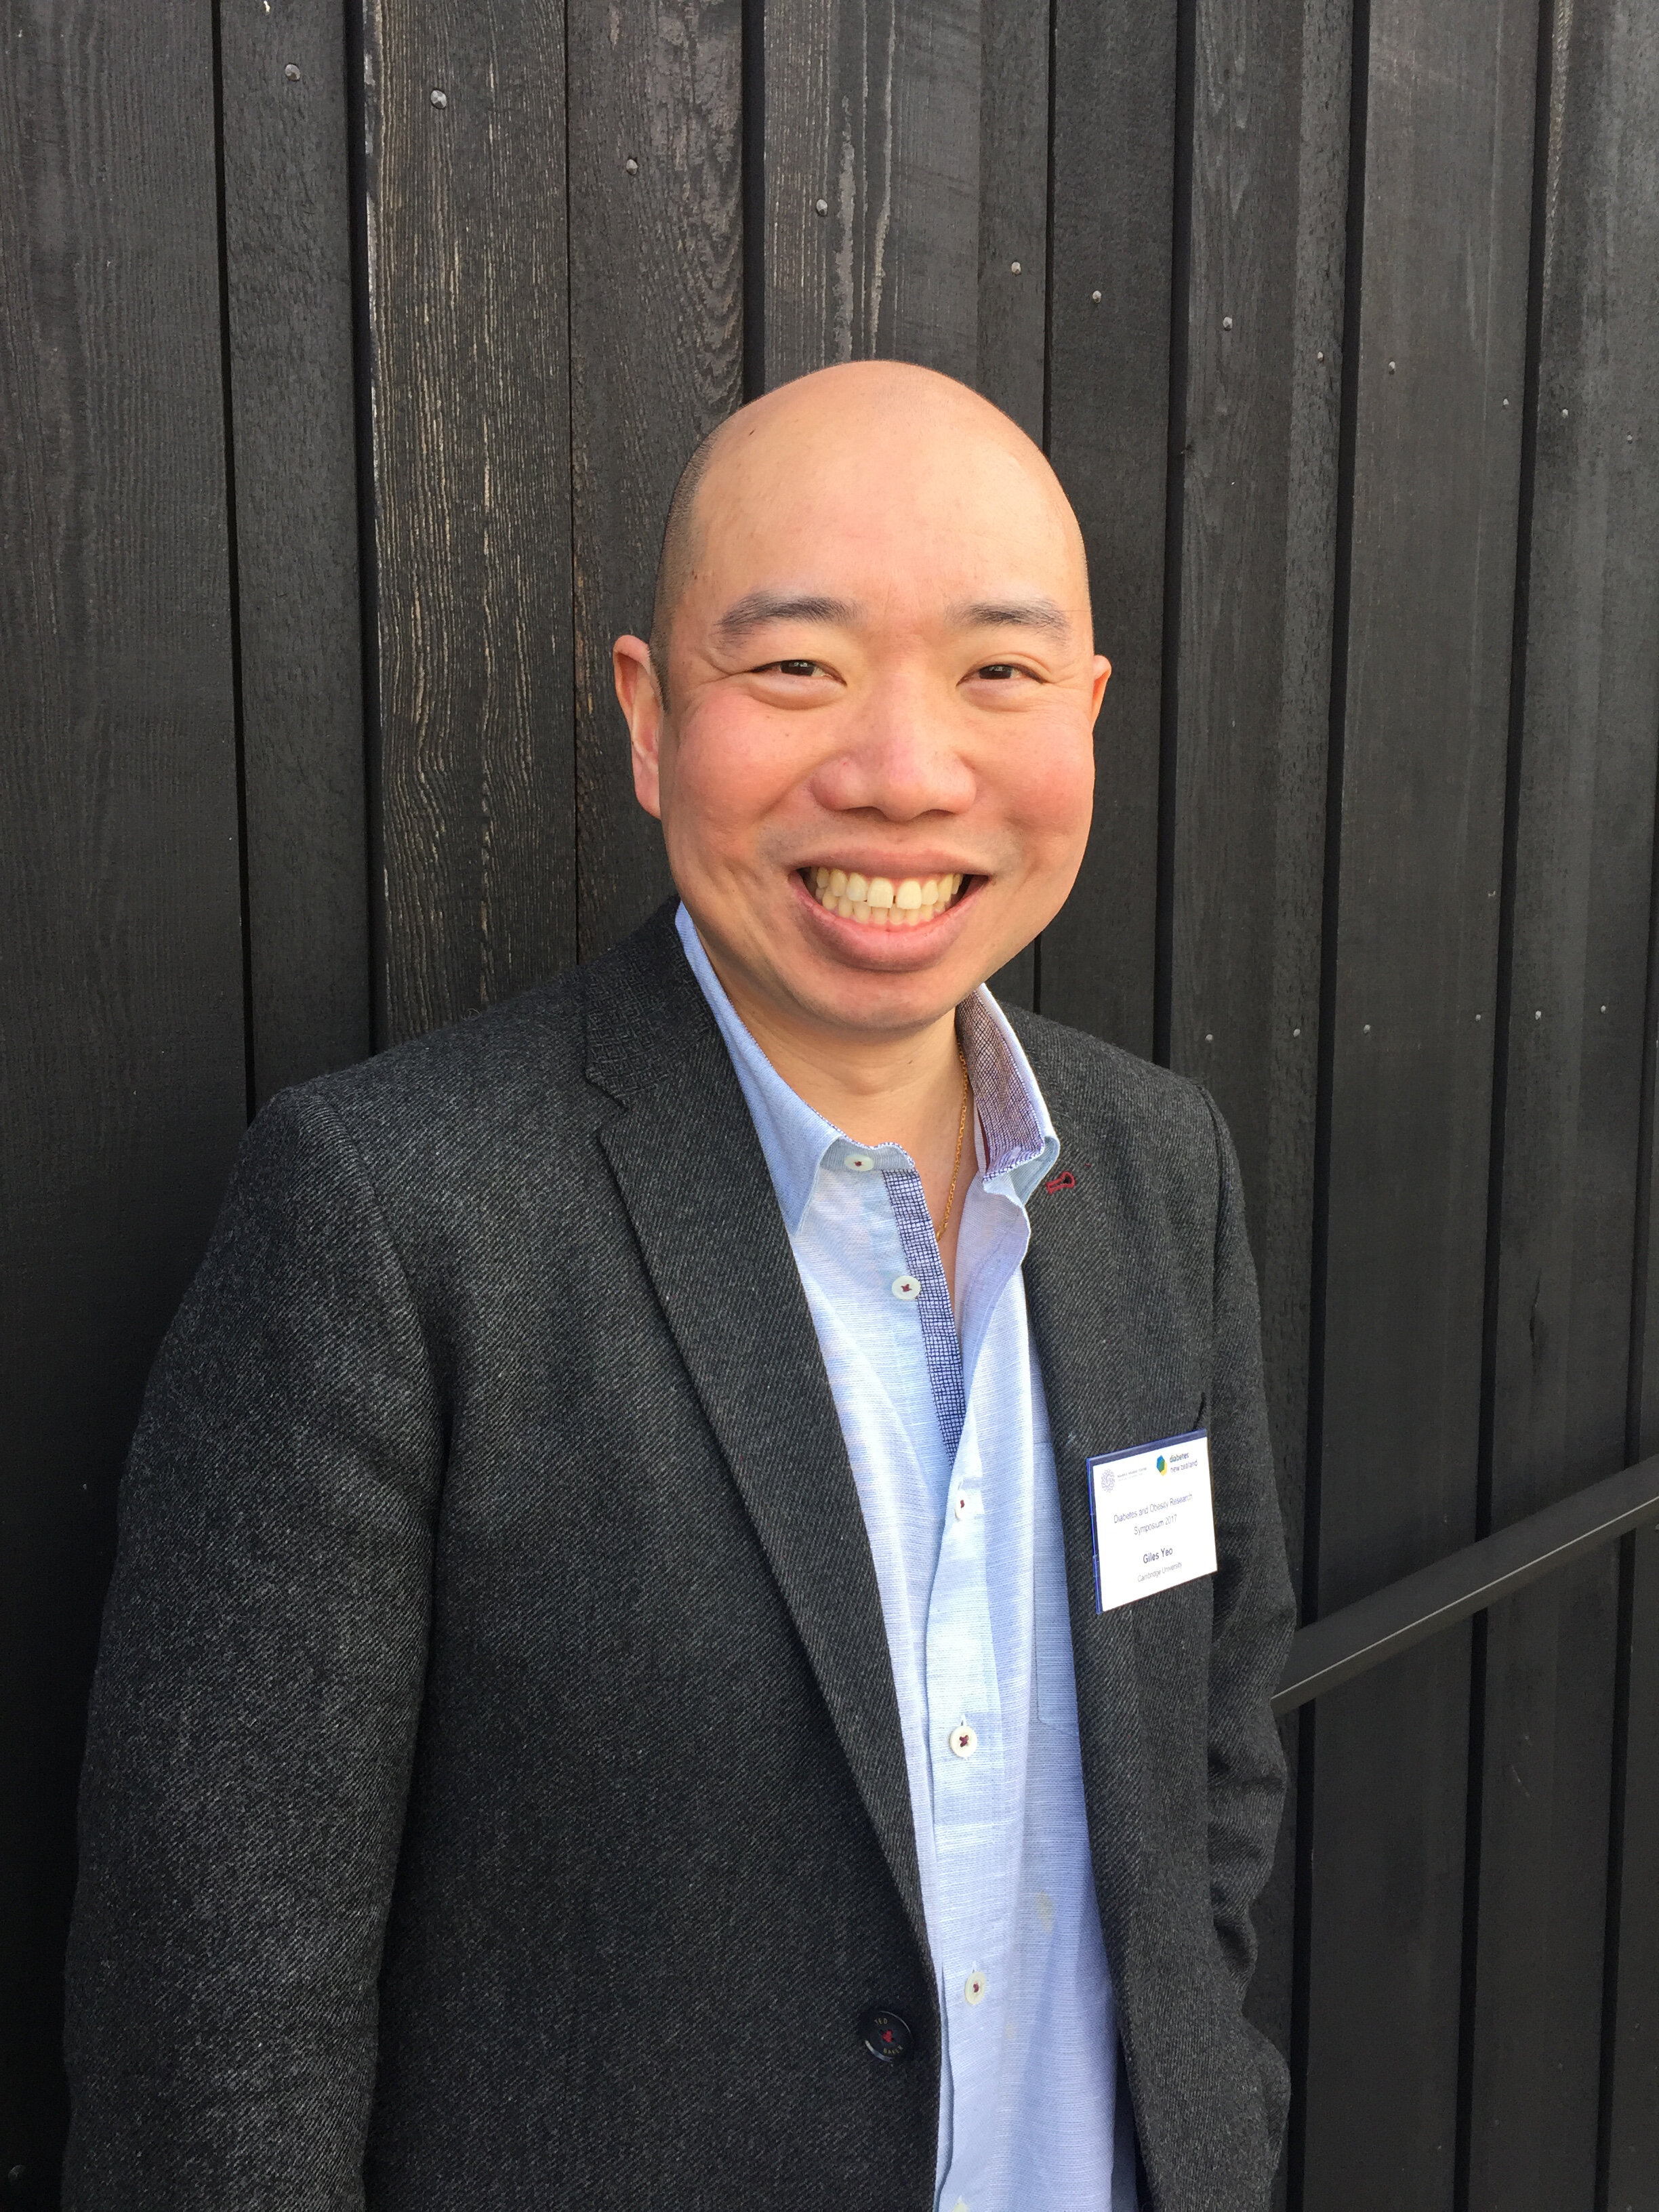 Dr Giles Yeo is a geneticist and obesity expert from Cambridge University and a popular BBC presenter.